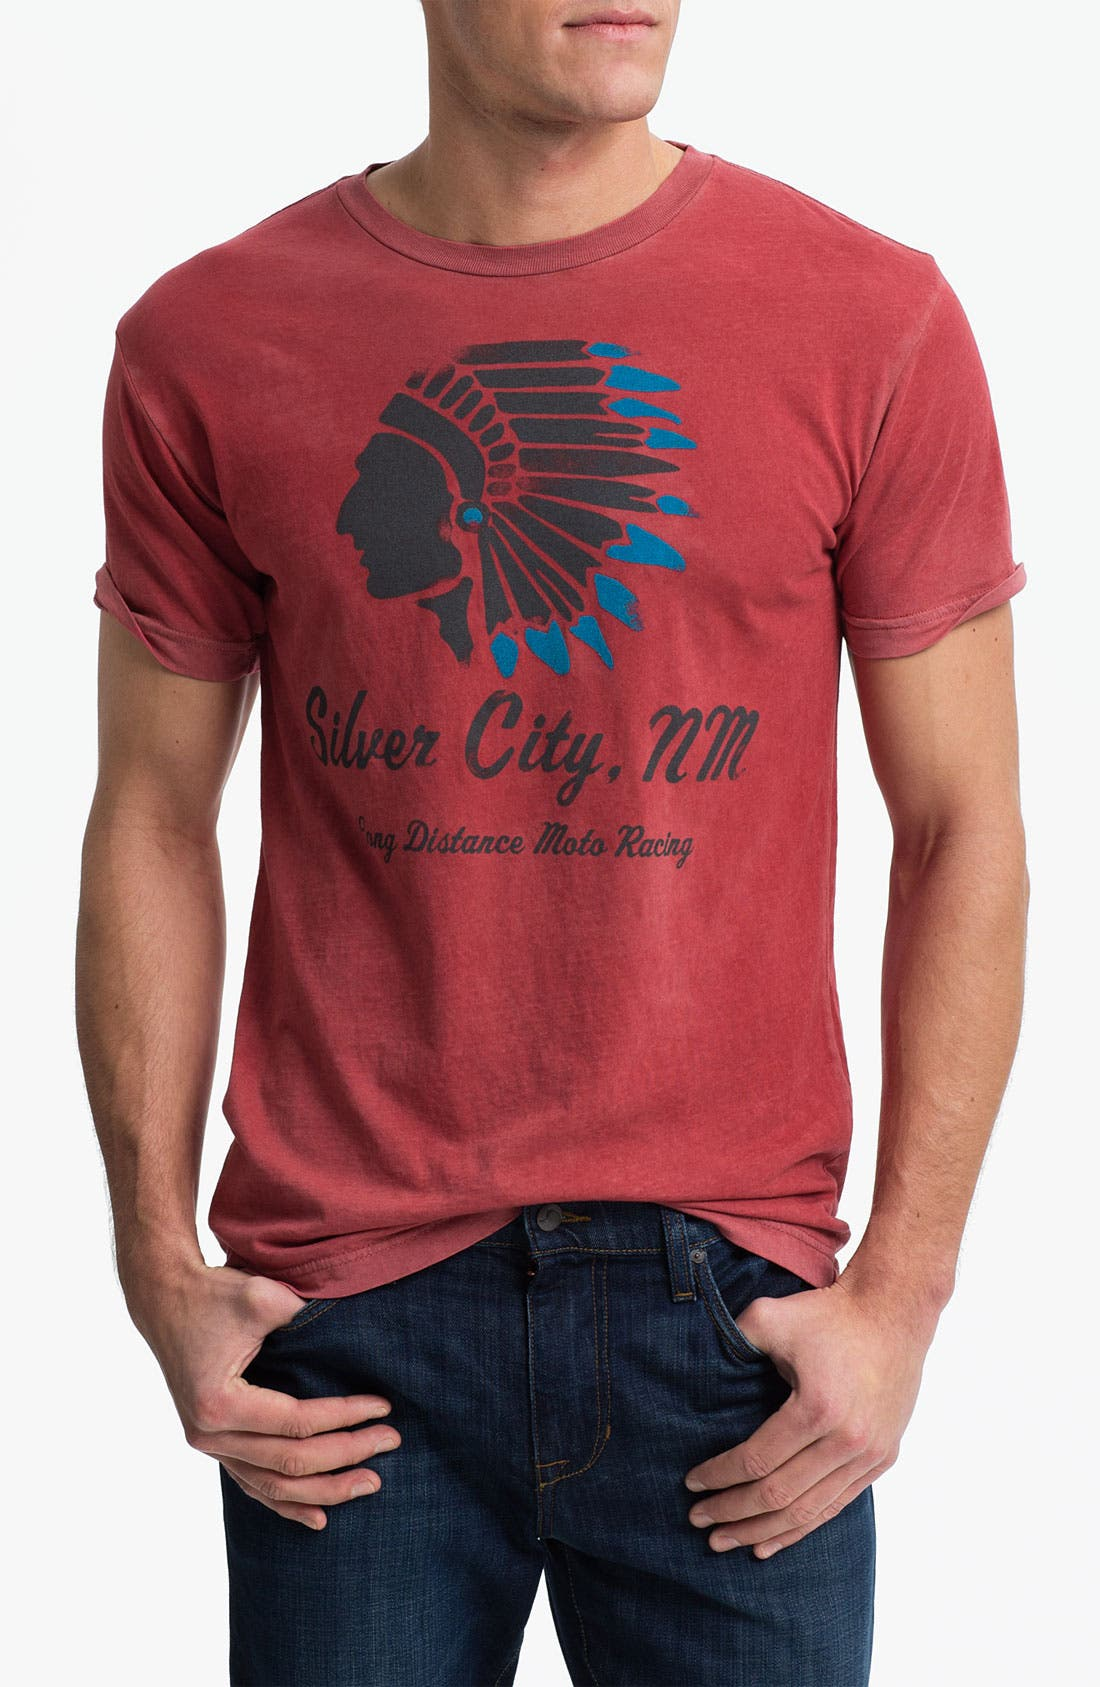 'Silver City, NM' Graphic T-Shirt,                         Main,                         color, Red